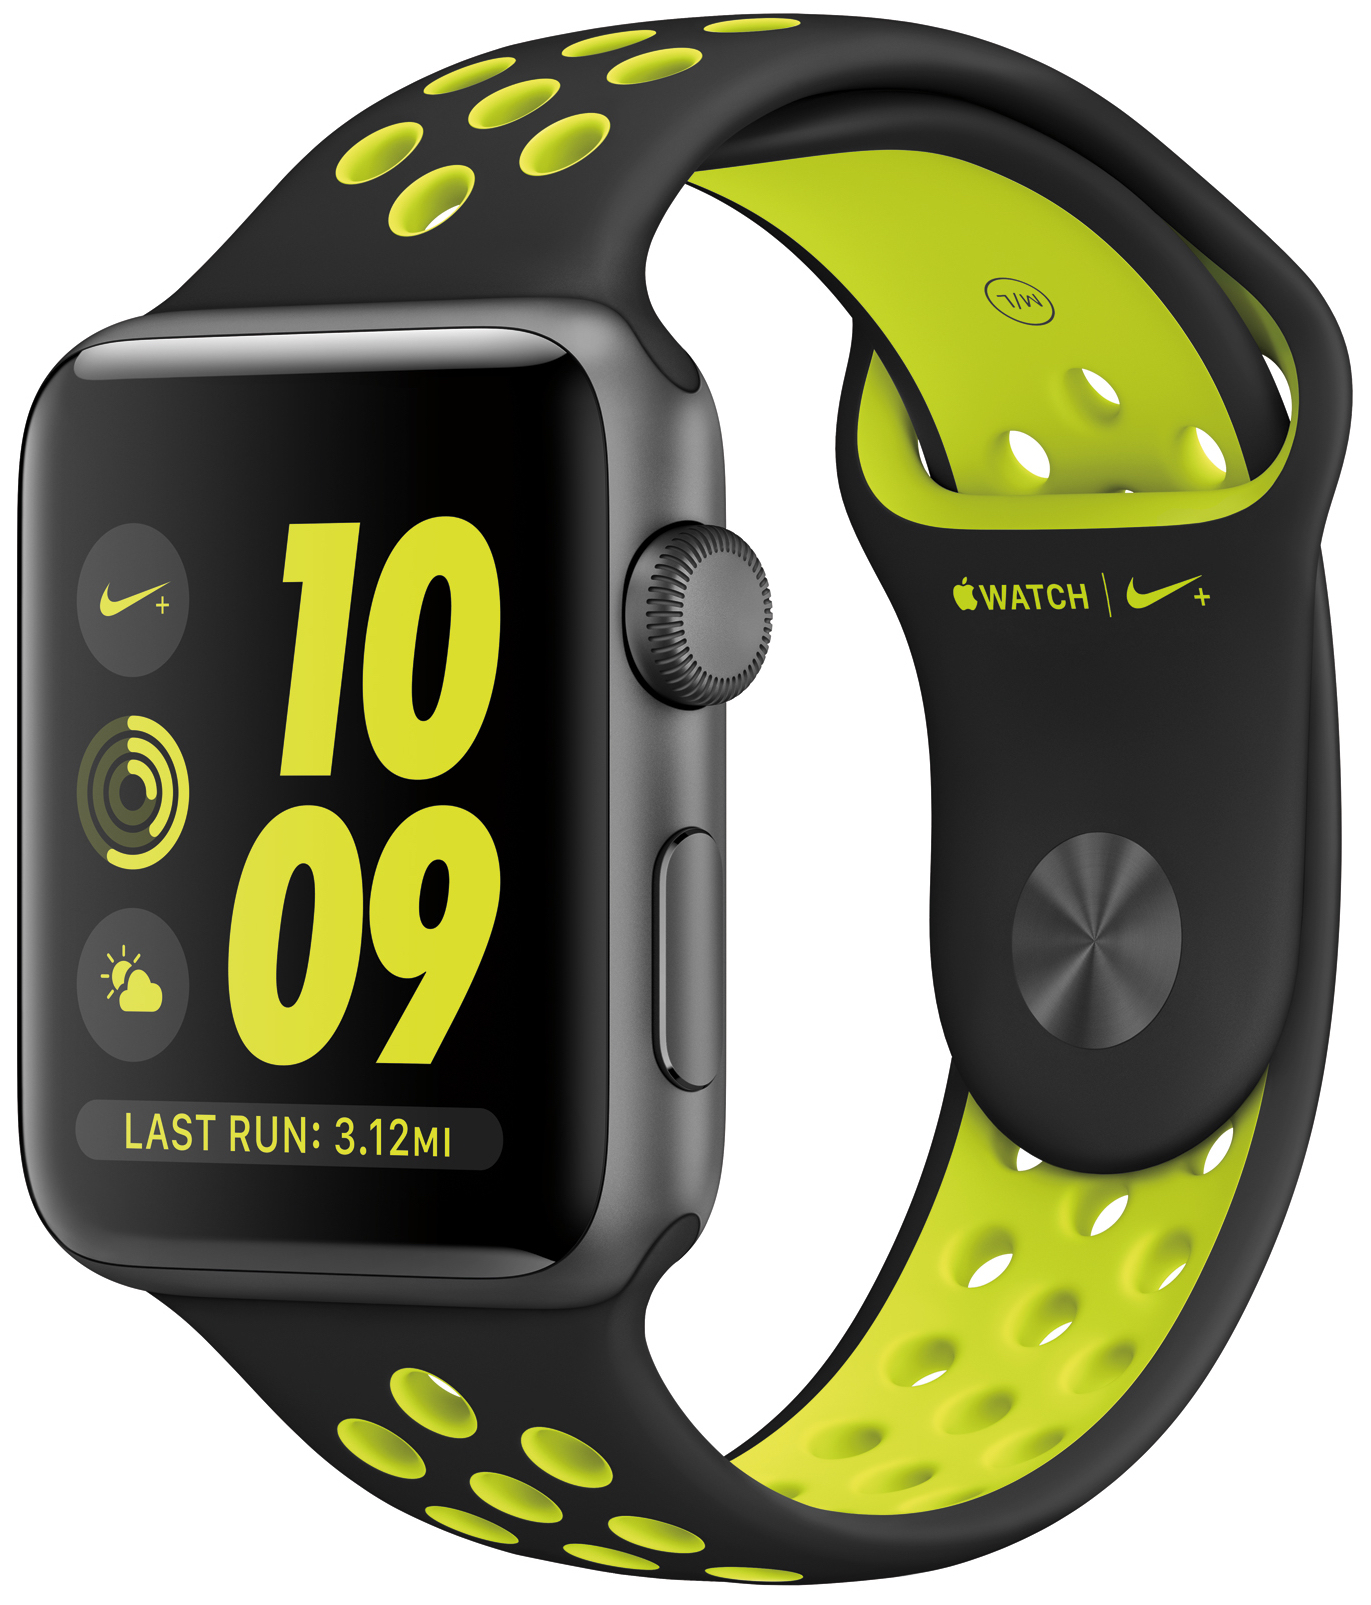 Offerta Apple Watch 2 Nike+ 42mm su TrovaUsati.it